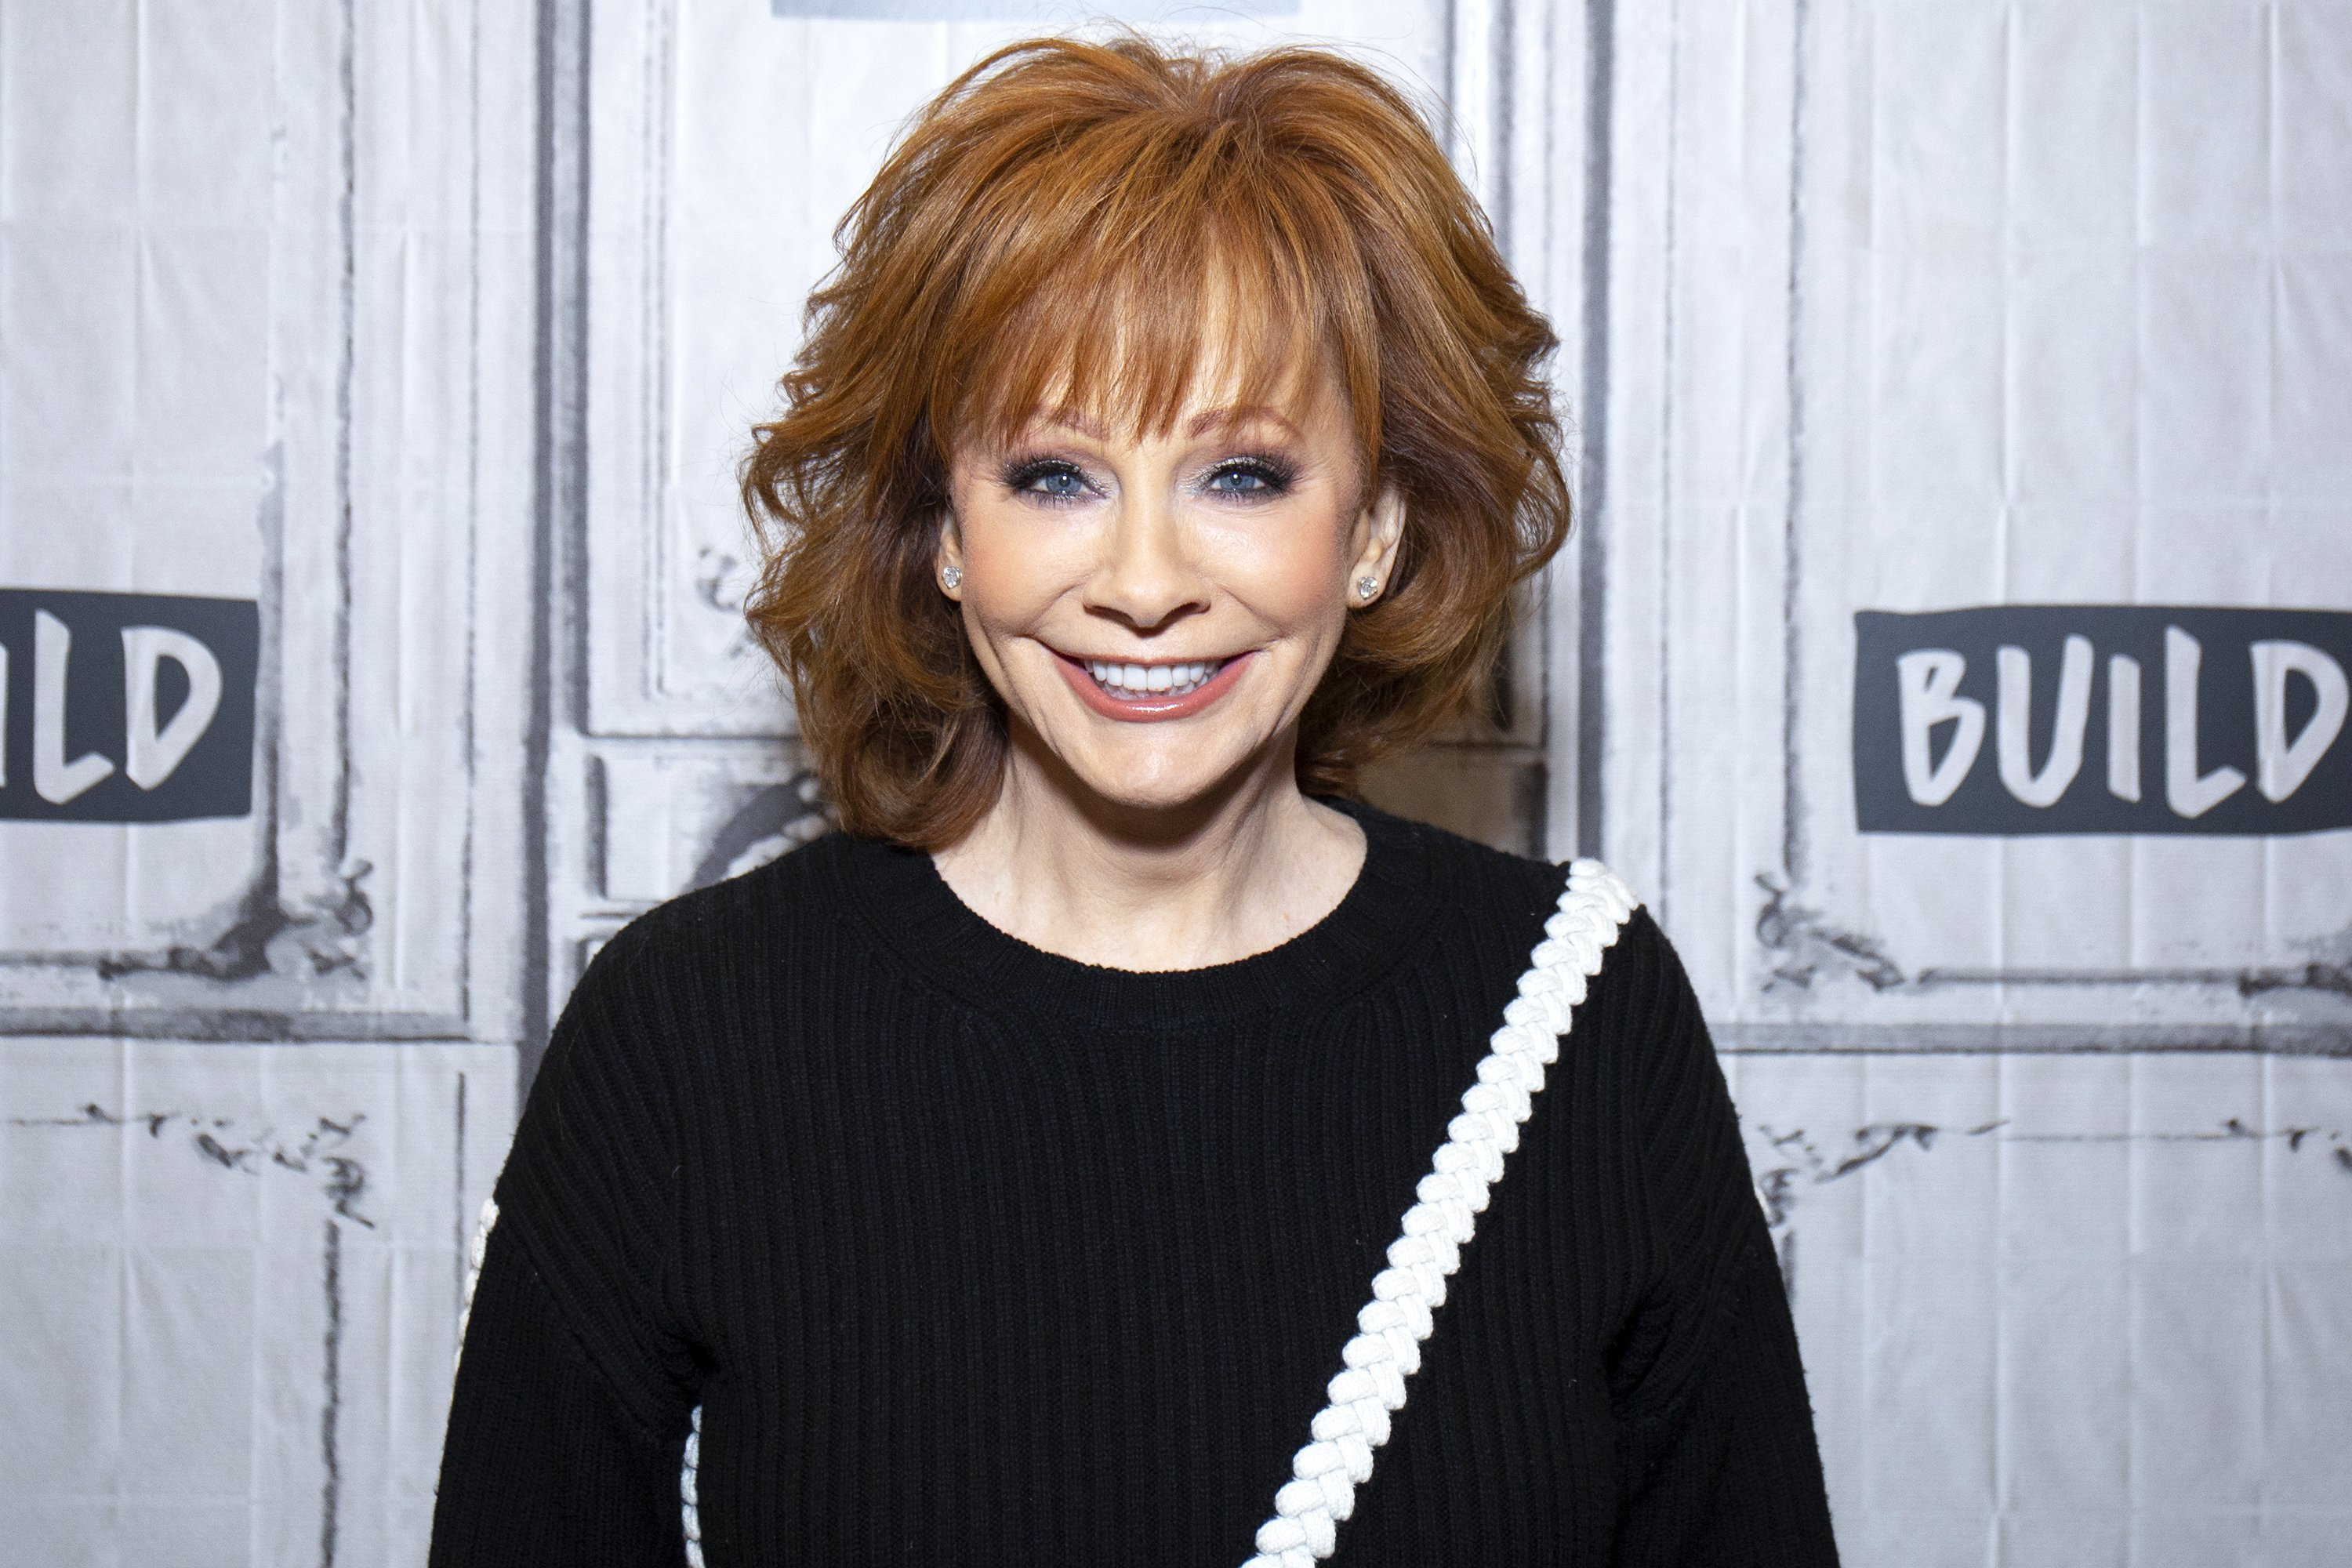 Reba McEntire visits Build Studio on February 20, 2019, in New York City. | Source: Getty Images.